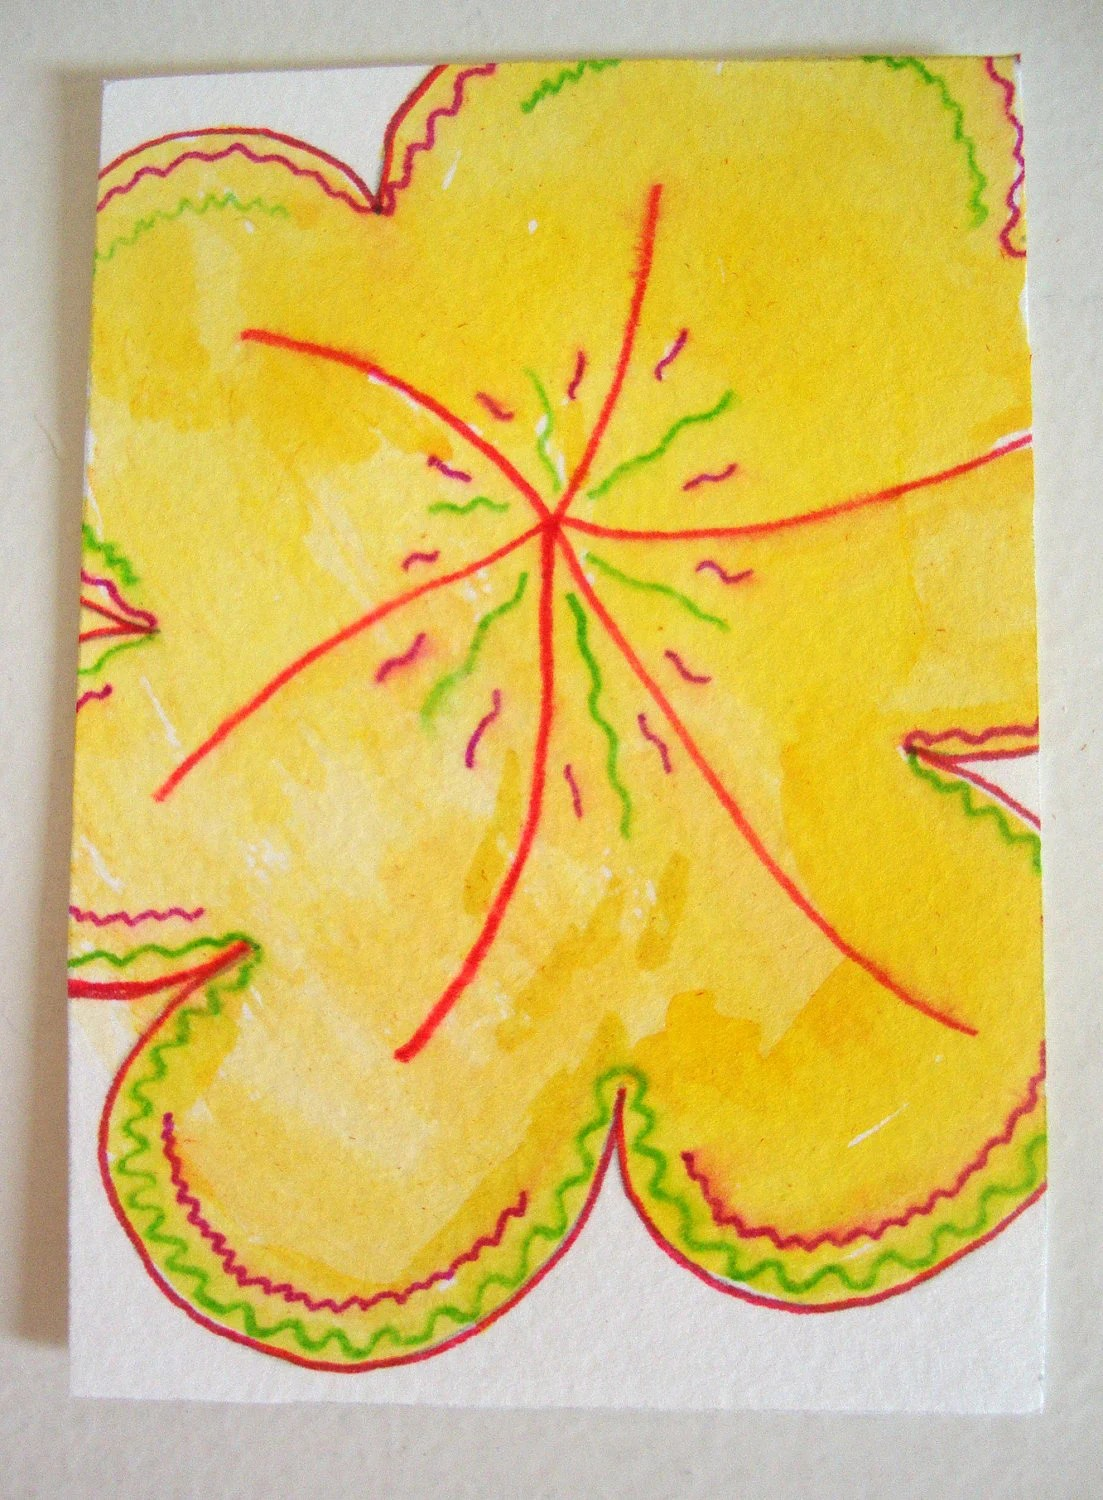 ACEO Original Watercolor Illustration - Power of the Sun - One of a Kind